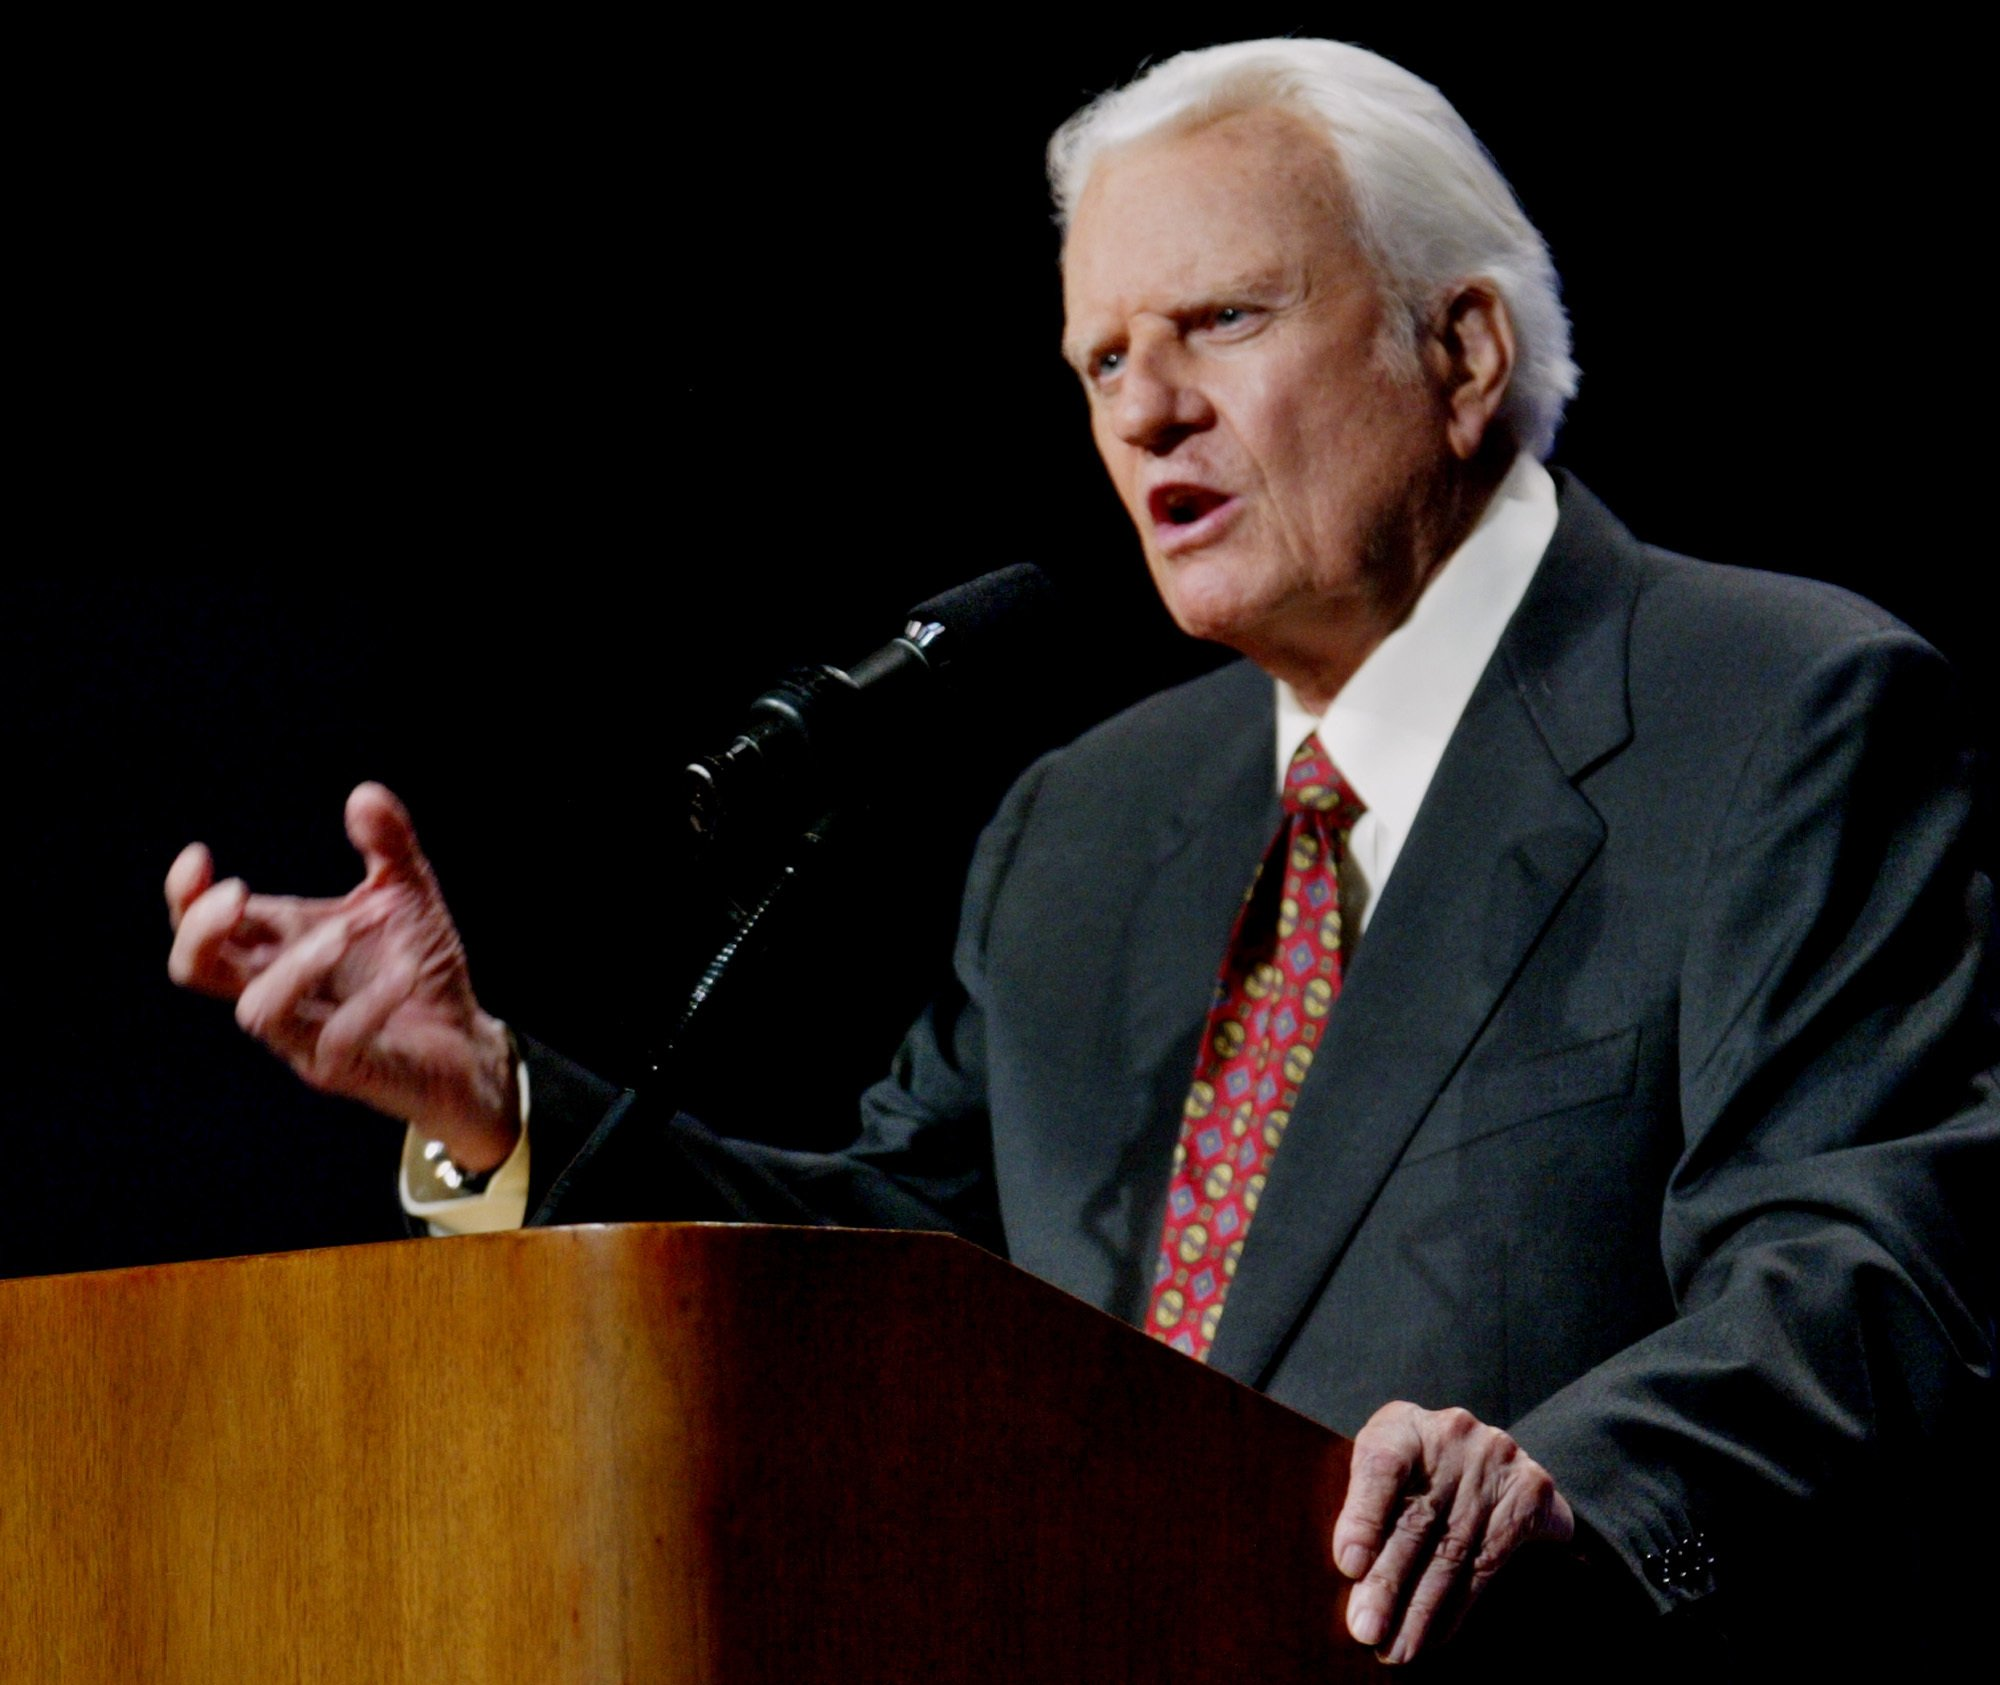 Billy Graham had pride and regret on civil rights issues thumbnail